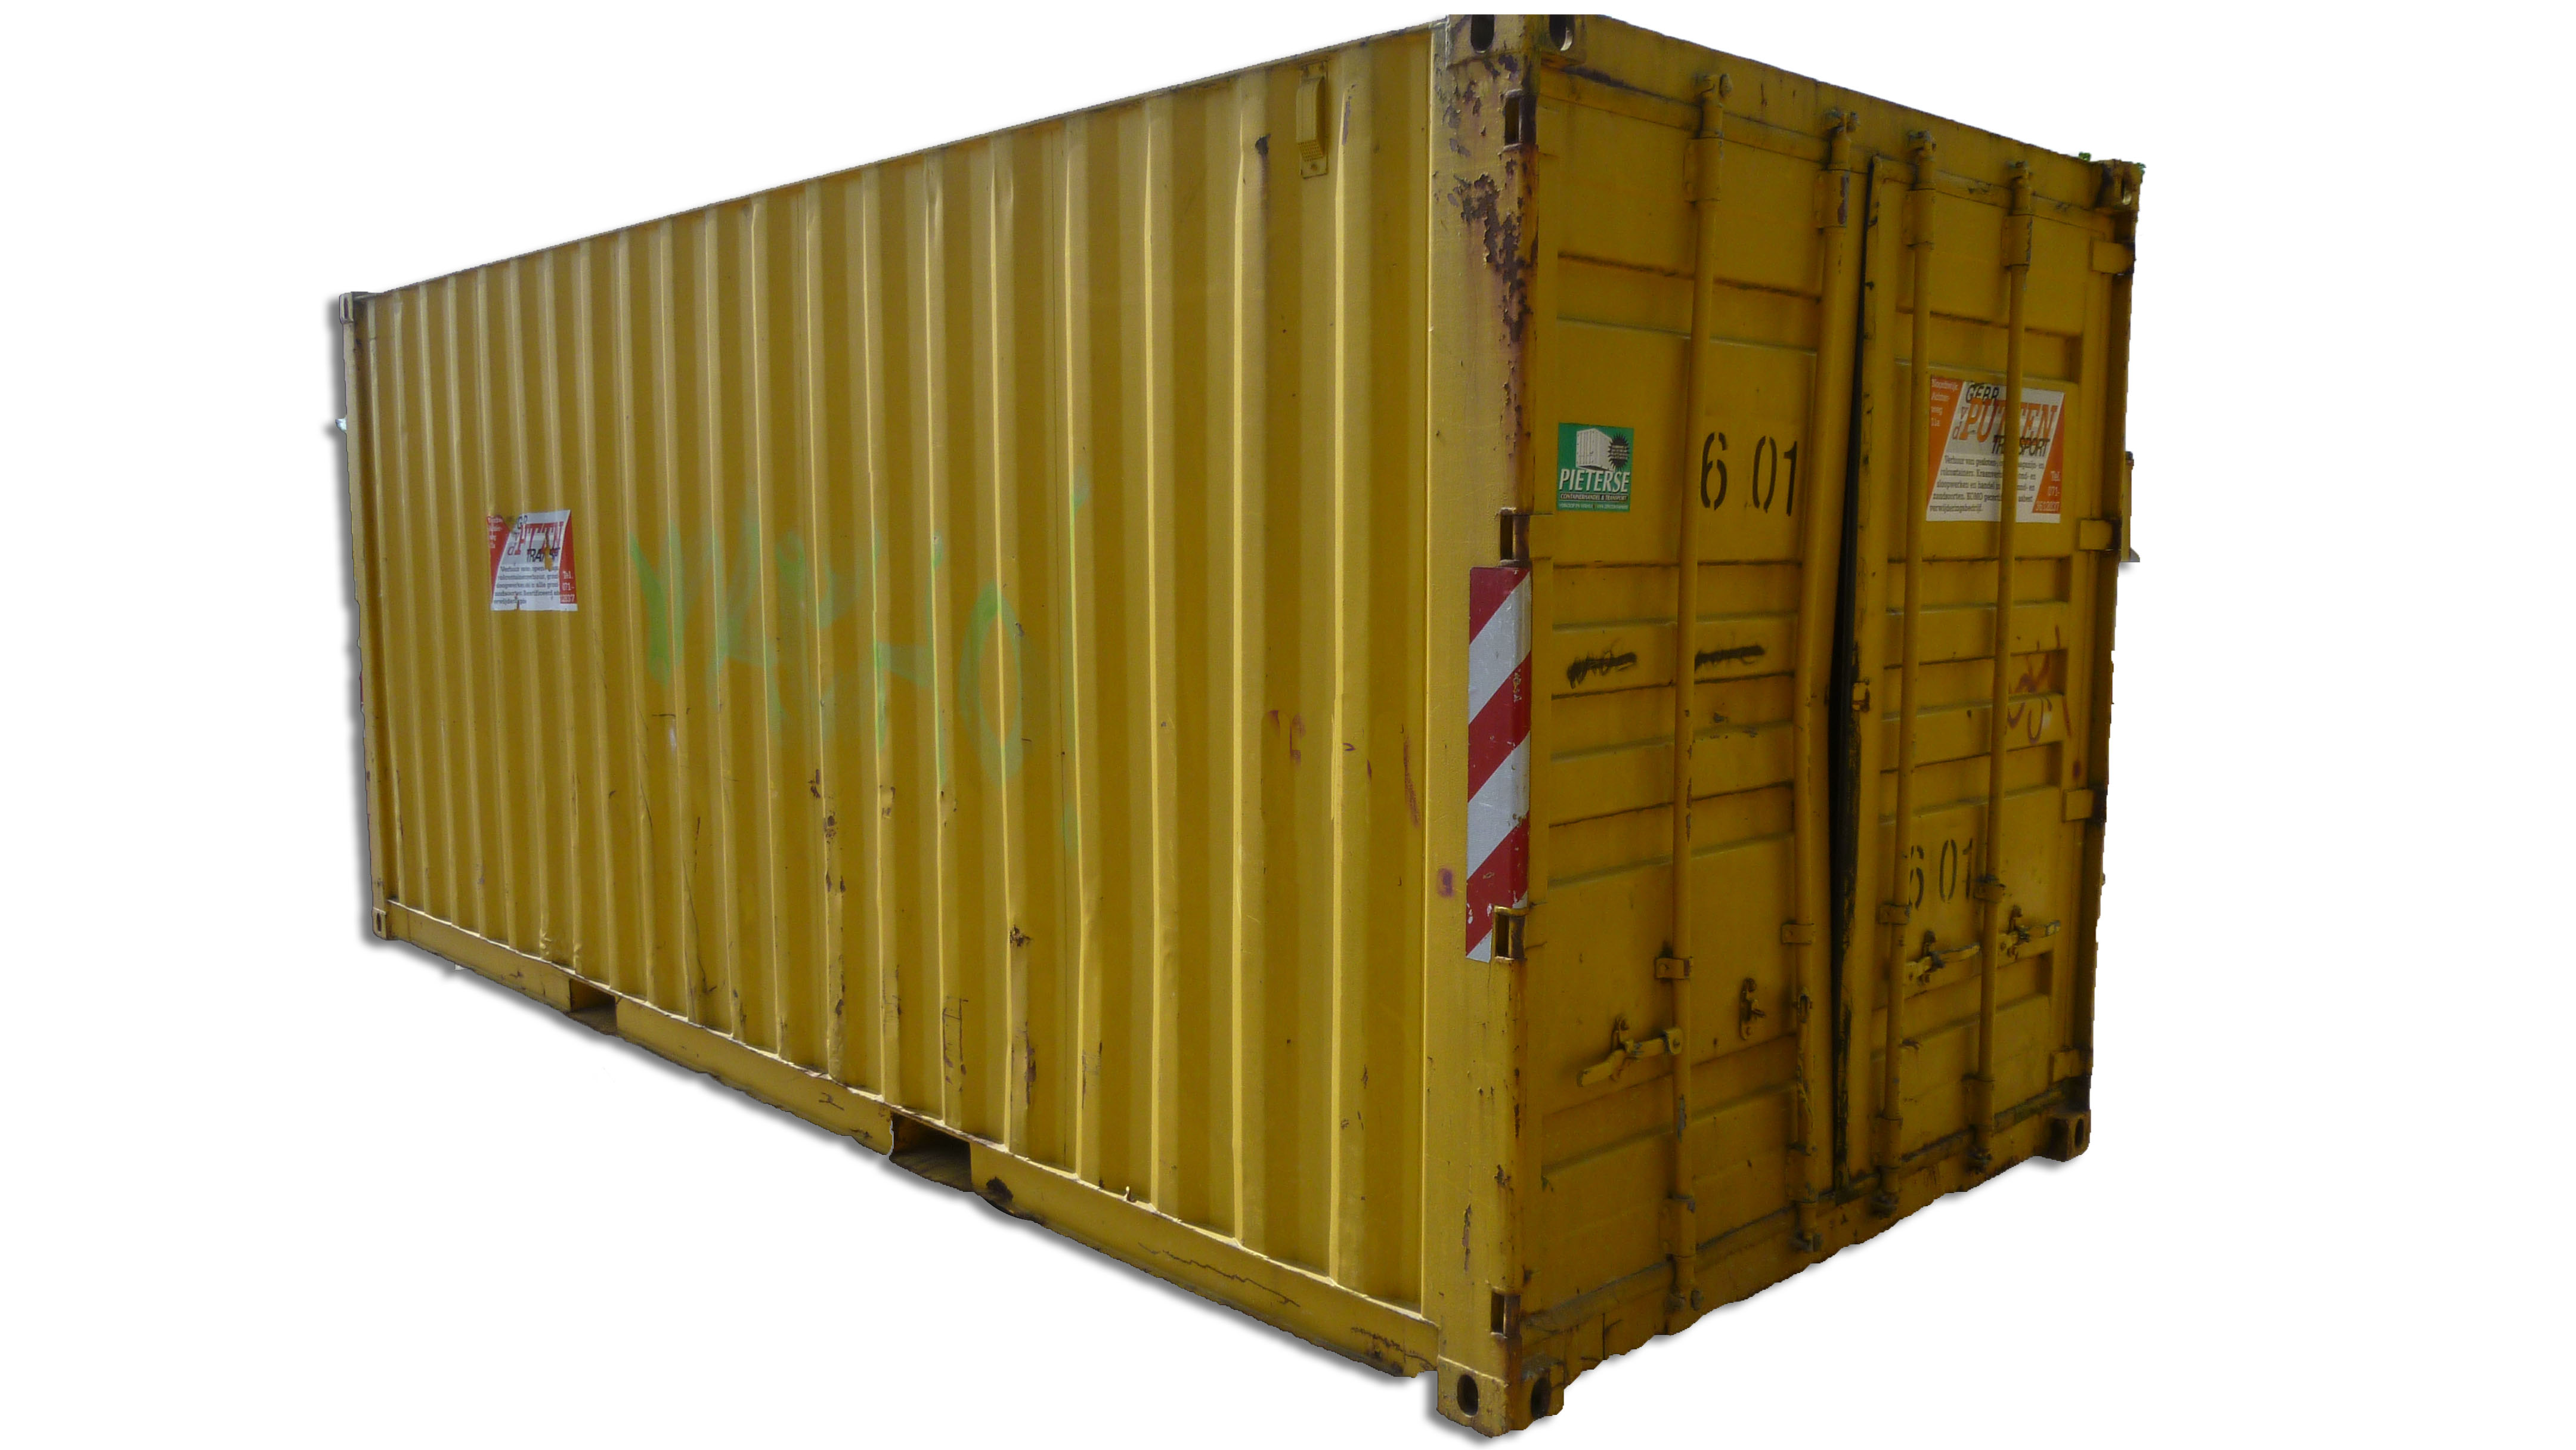 6 meter magazijncontainer